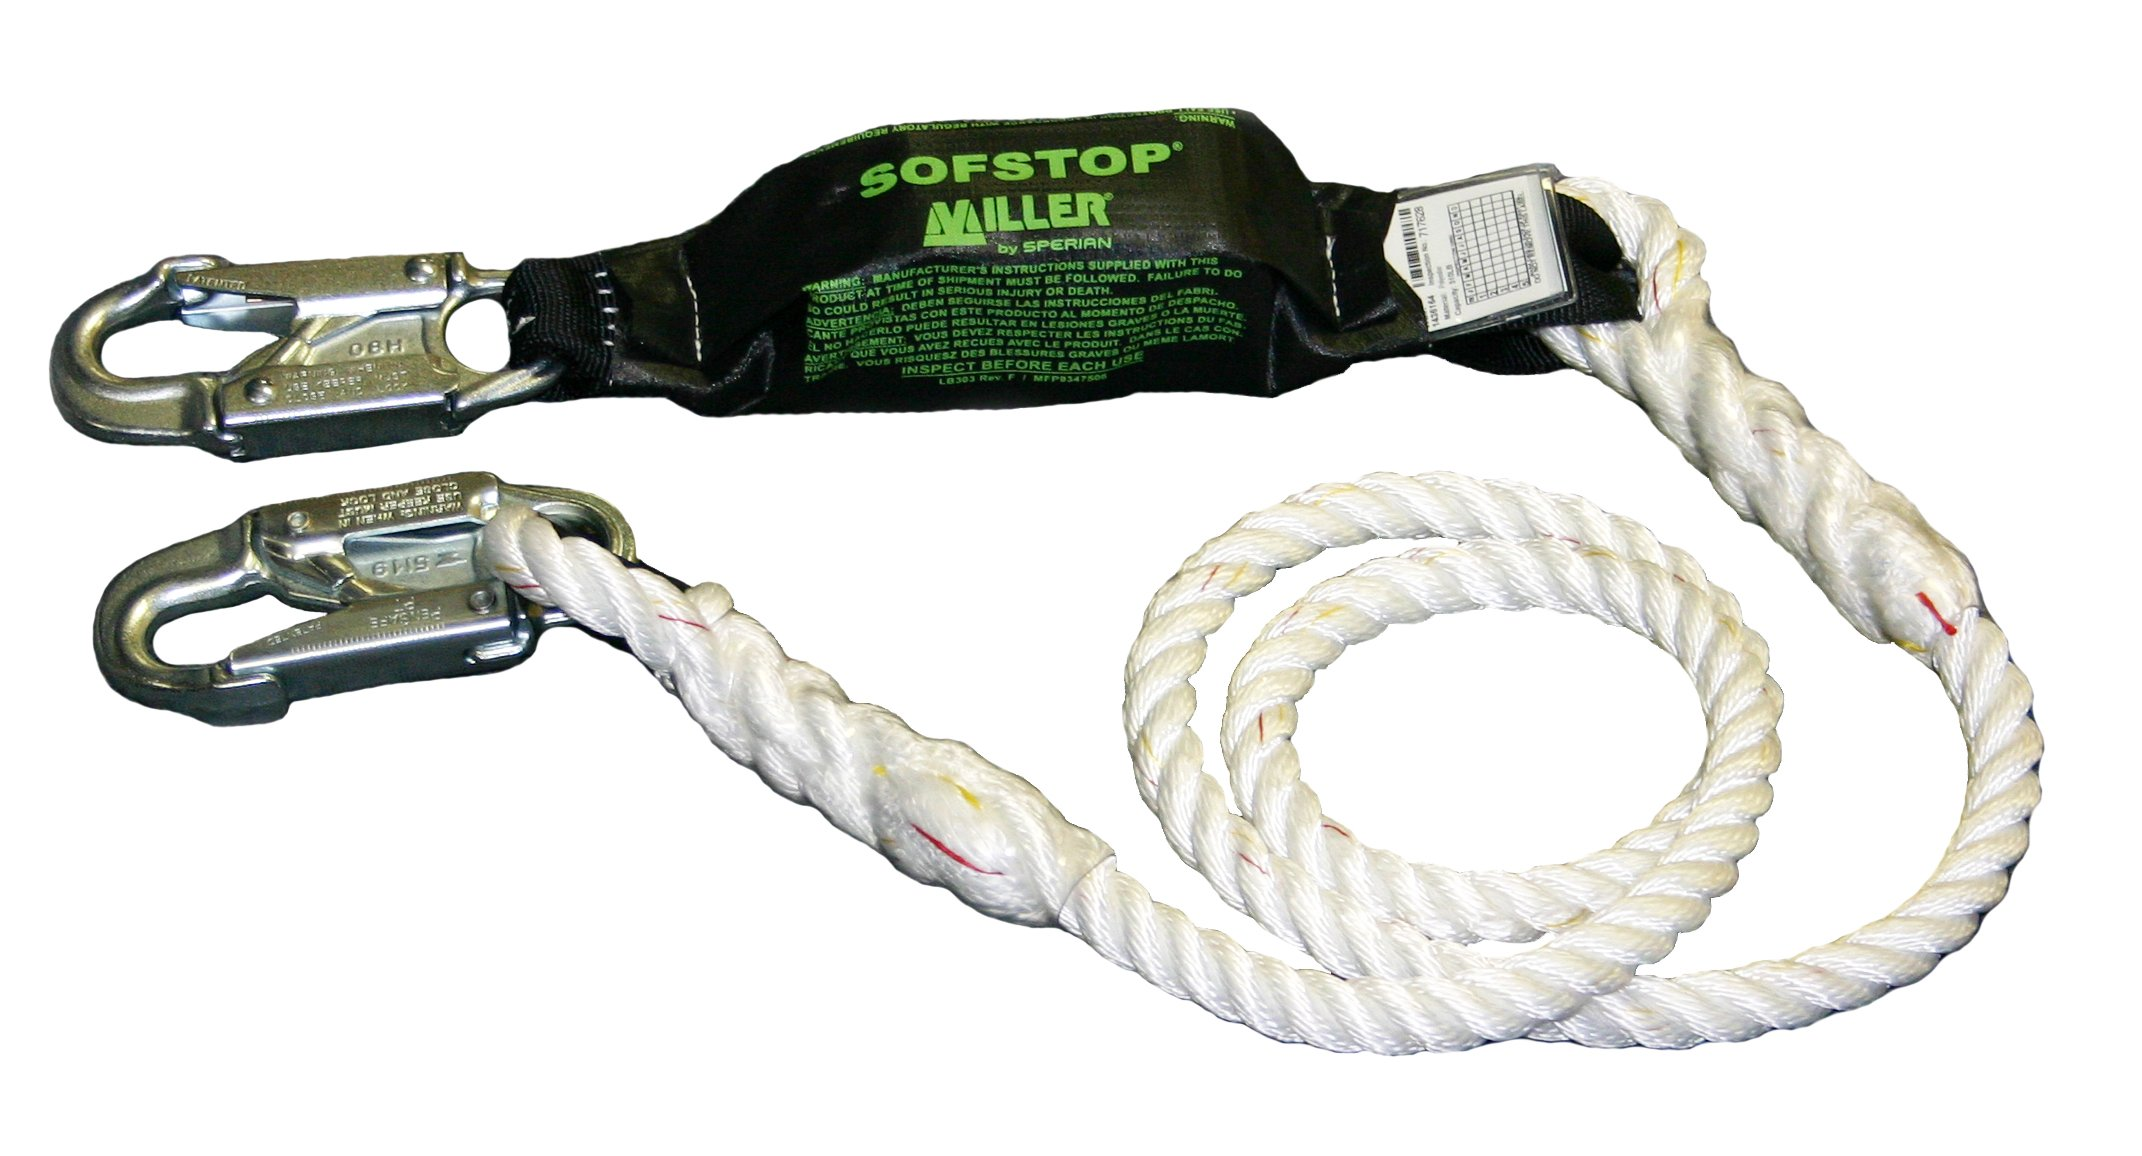 Miller by Honeywell 903RLS-8/12FTWH 1/2-Inch, 12-Feet Nylon Adjustable Rope Lanyard with Sofstop Shock Absorber and Two Locking Snap Hooks, White